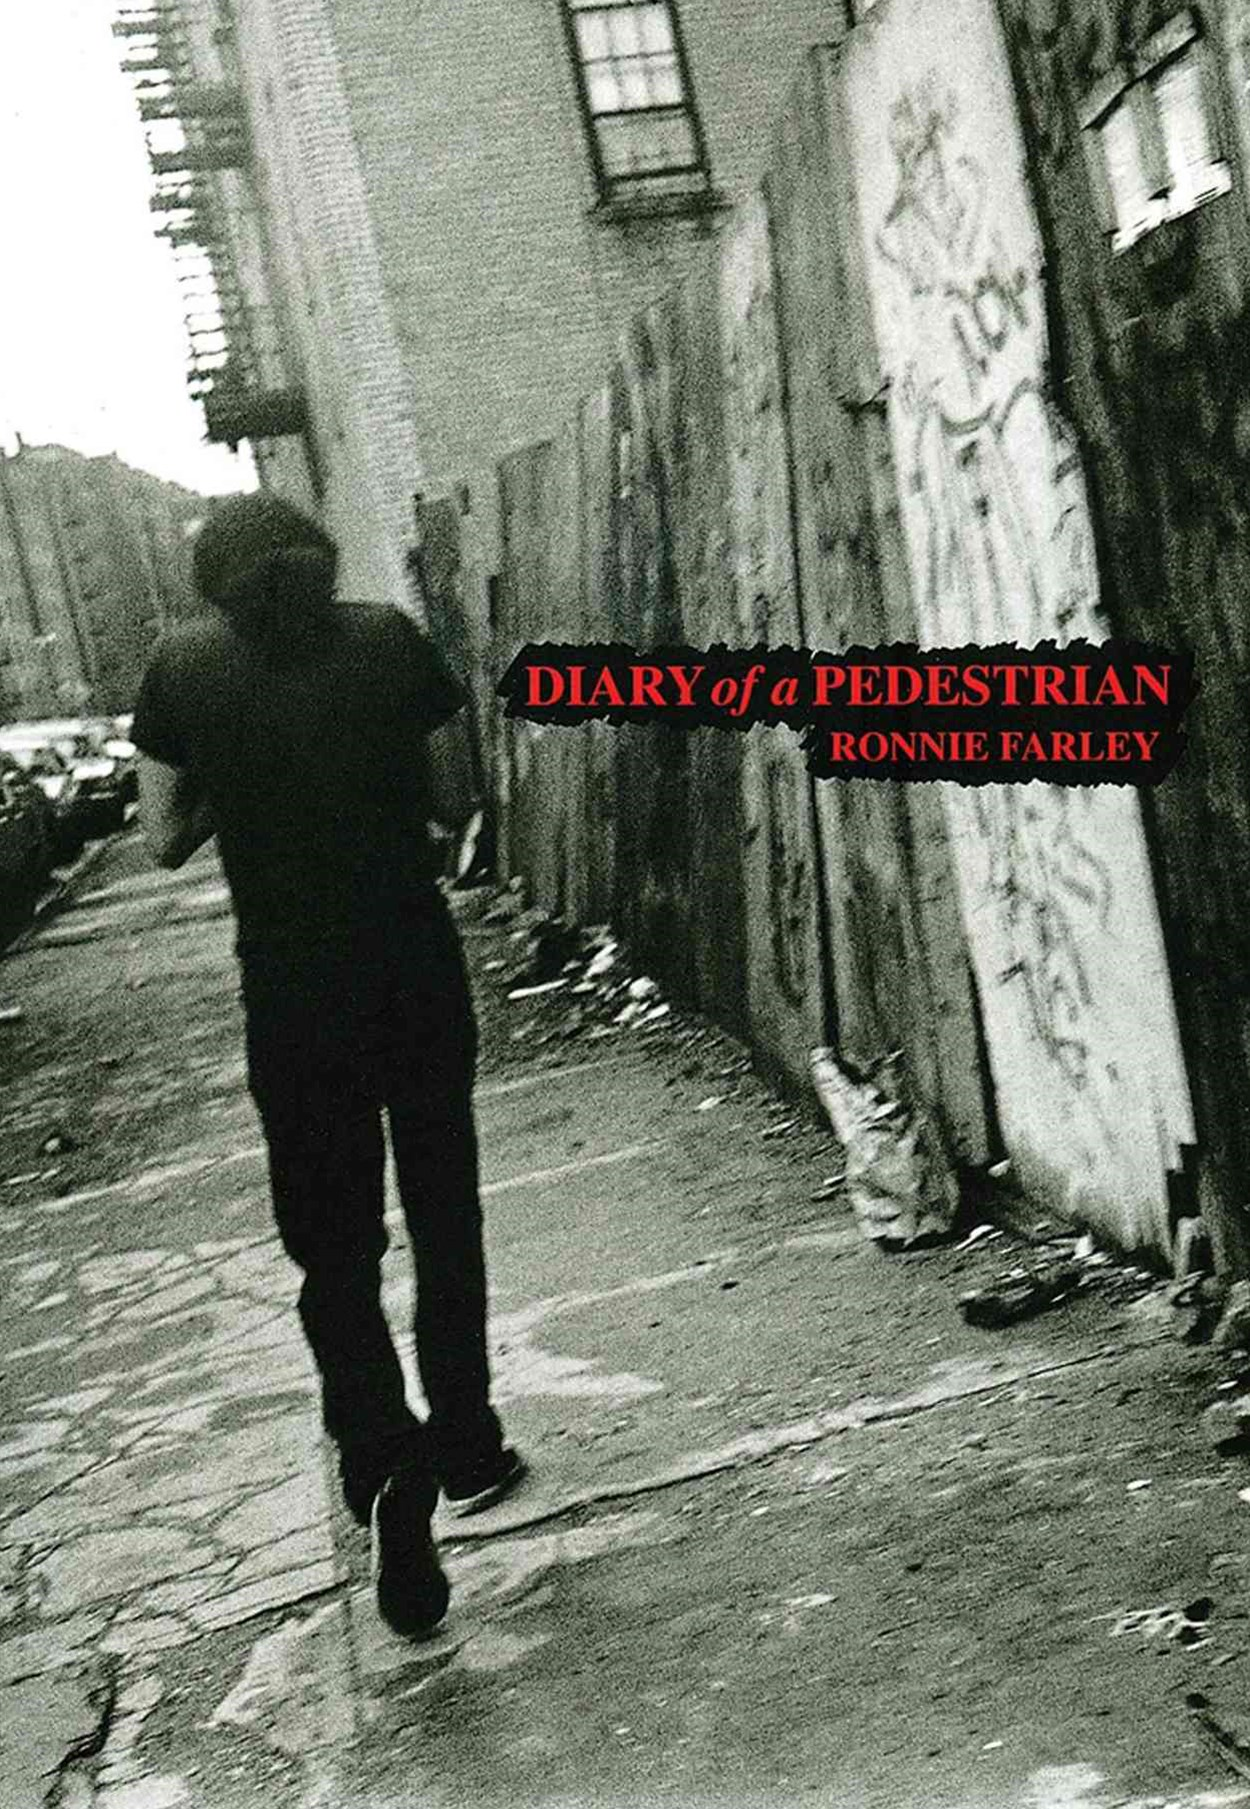 Diary of a Pedestrian: A New York Photo Memoir